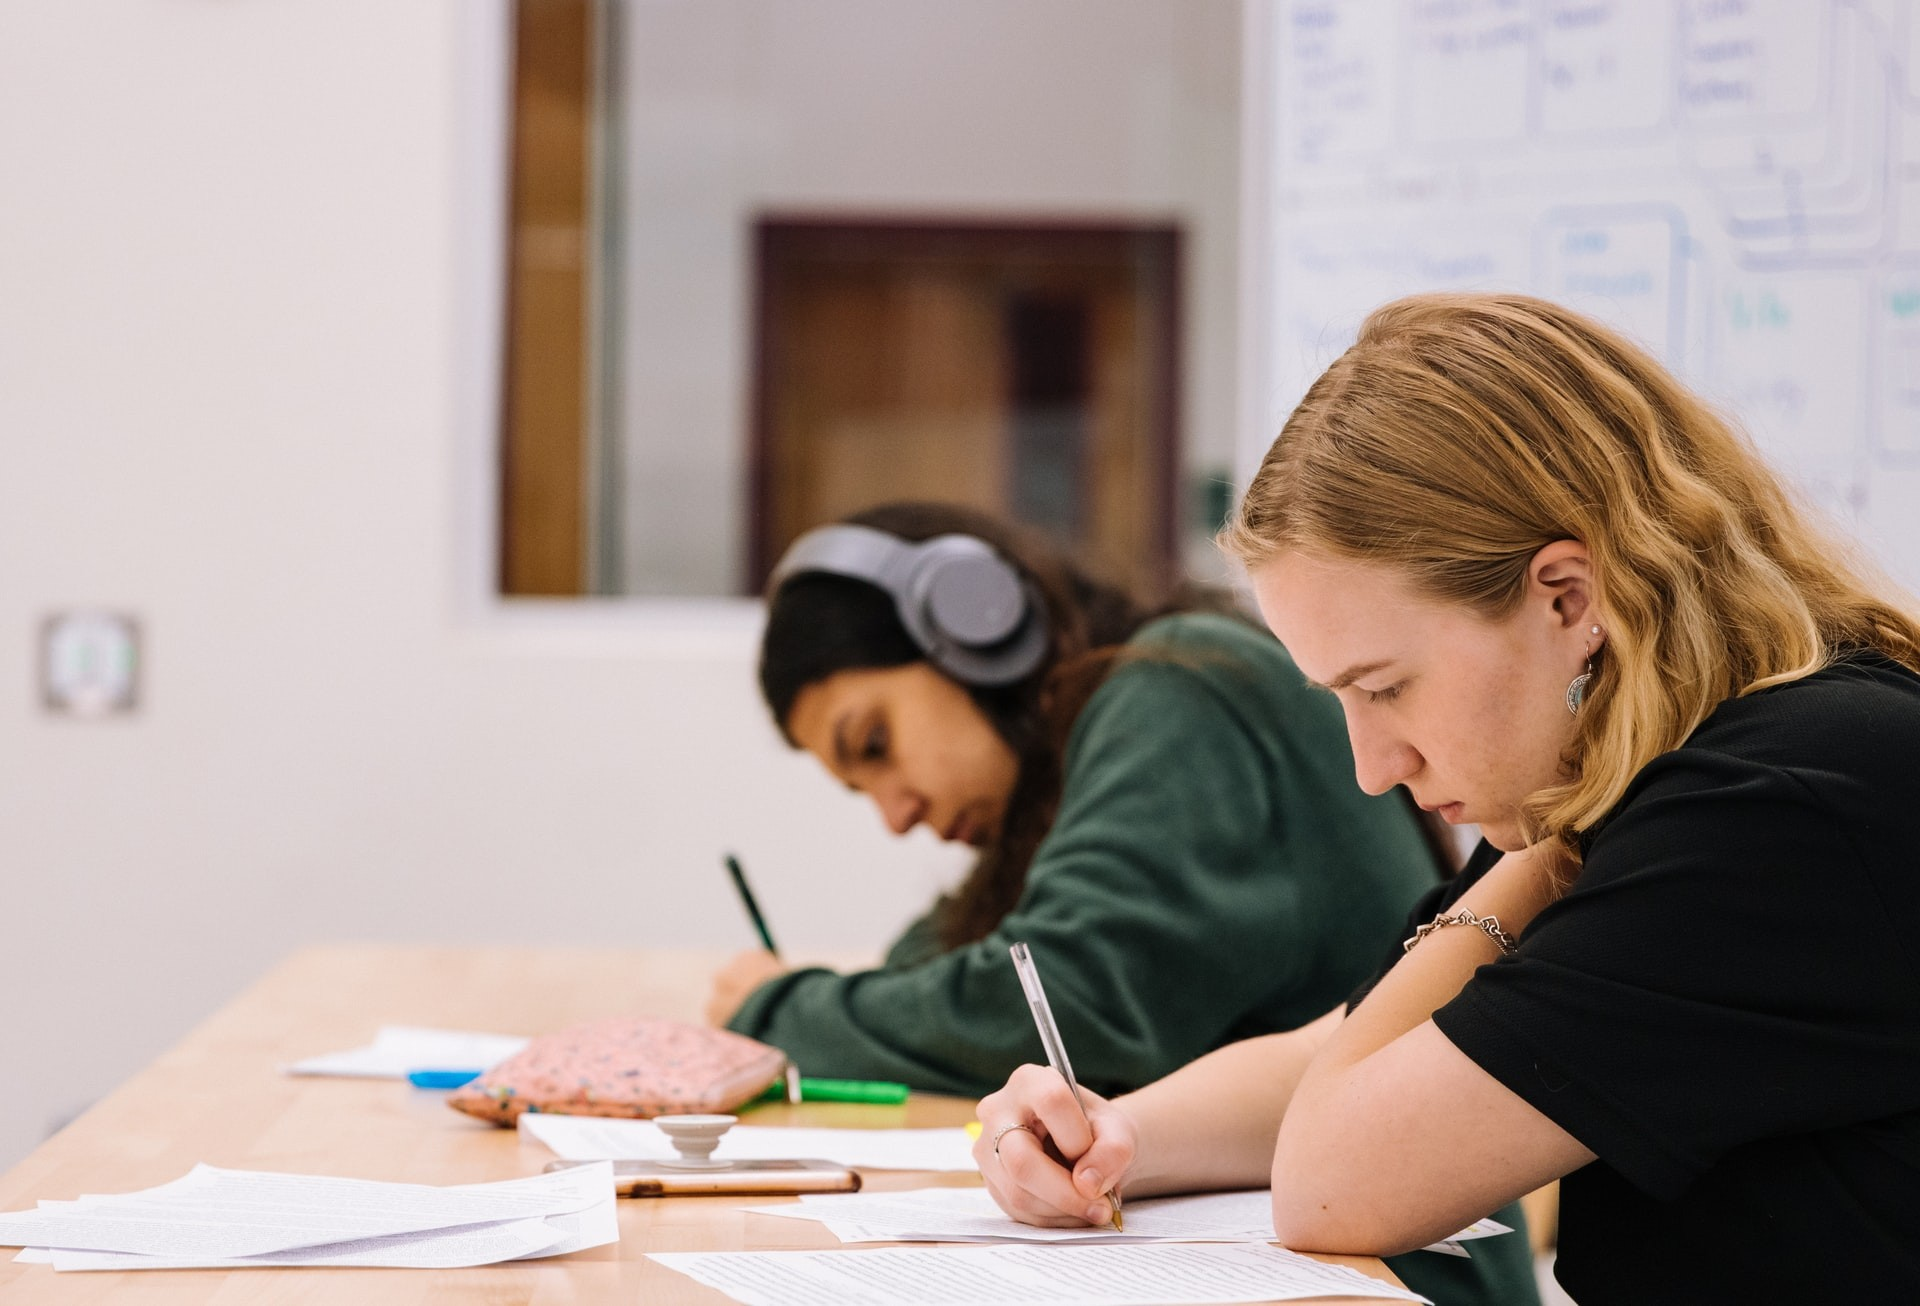 Two students write a test in a classroom.